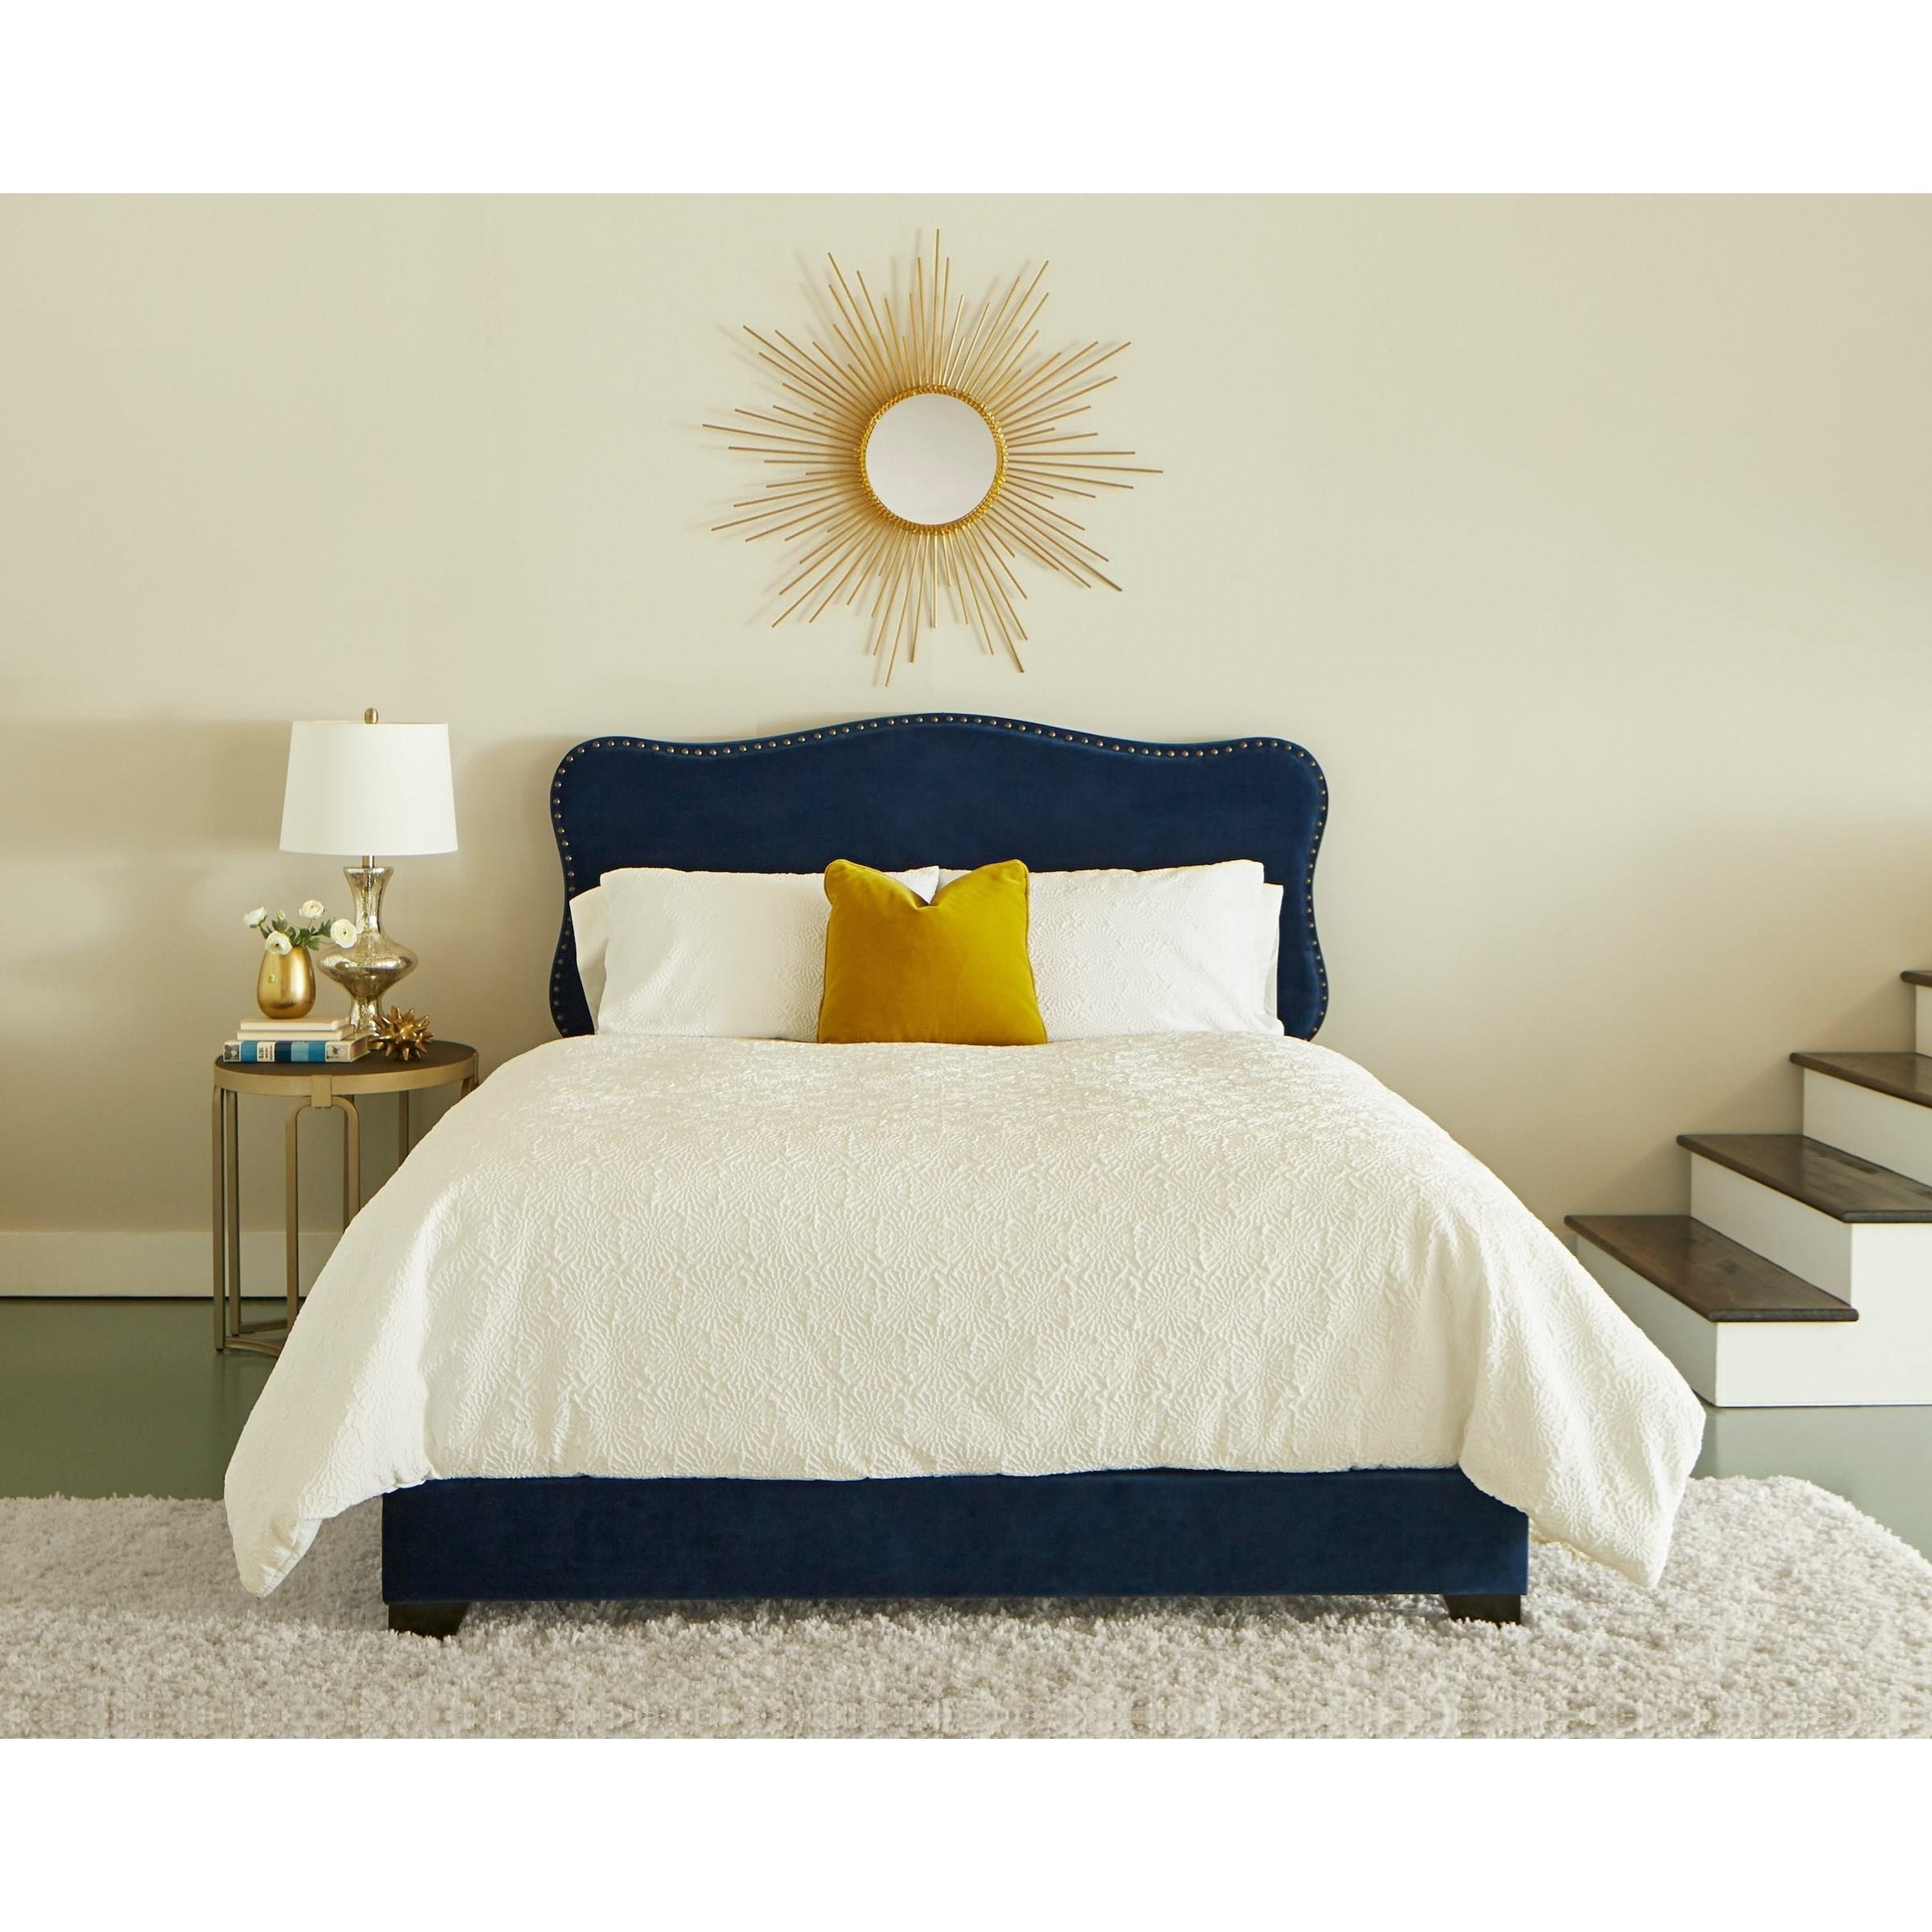 Possibilities - 283 Queen Upholstered Bed by Klaussner International at Northeast Factory Direct